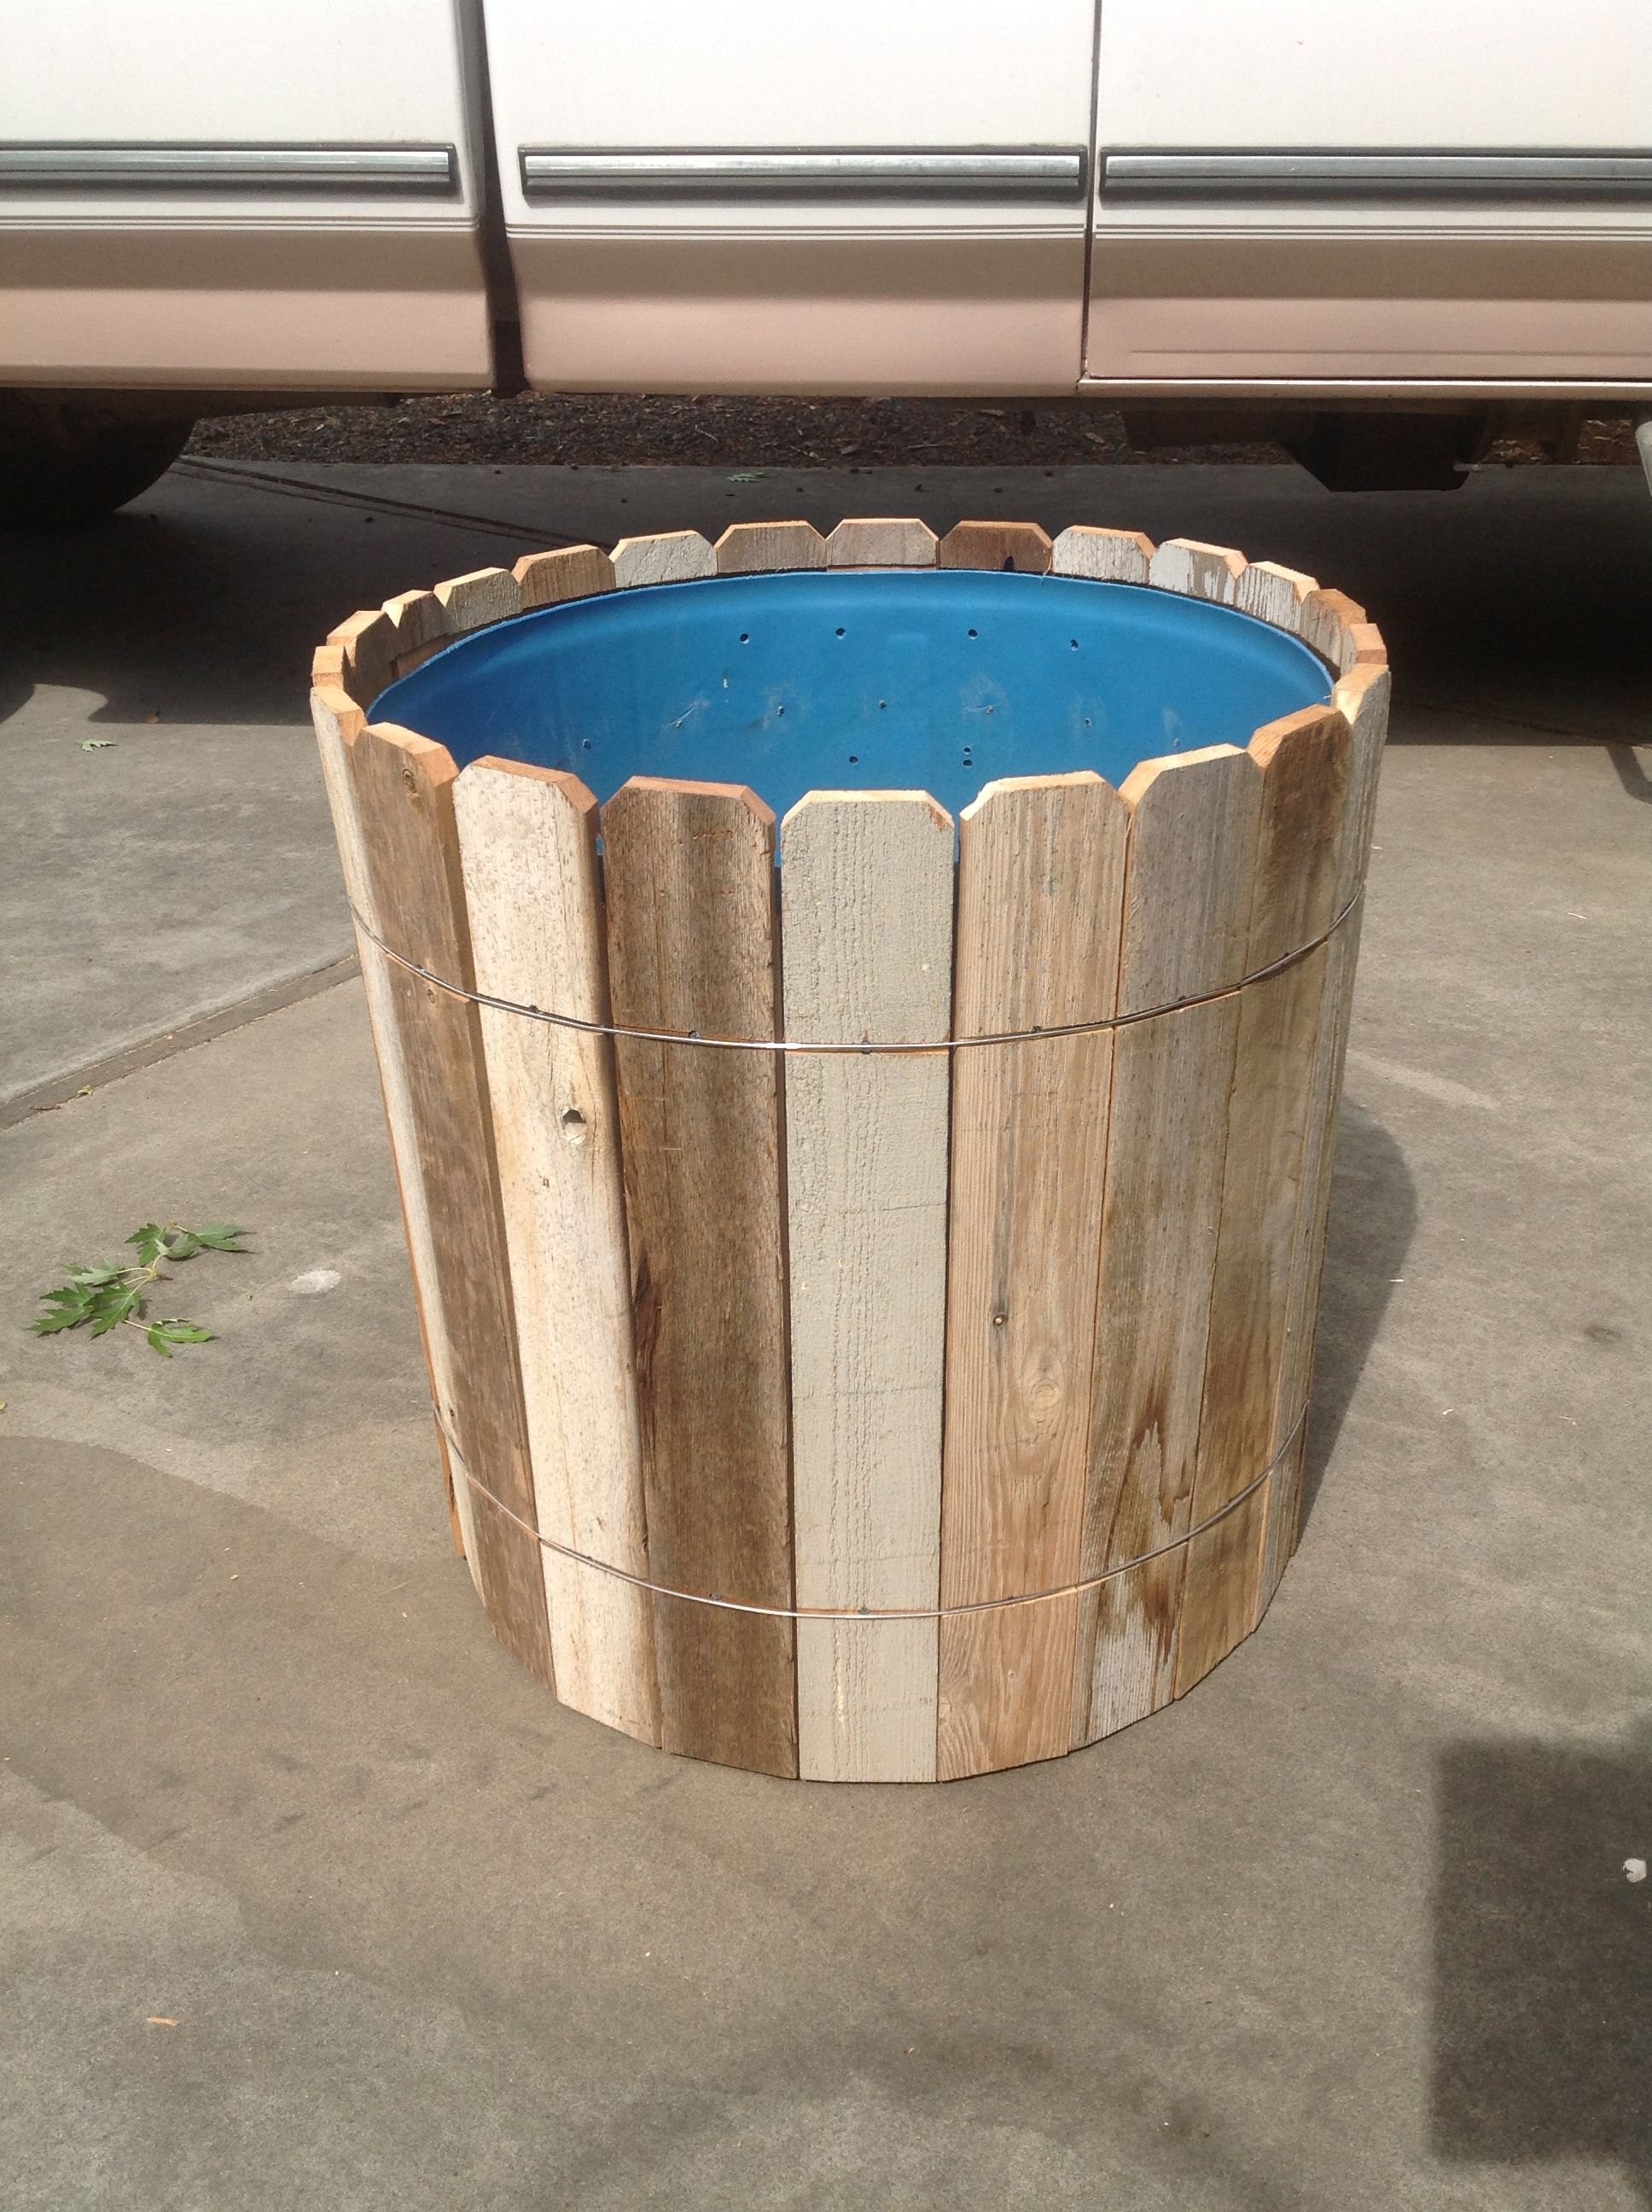 My husband made out of a large plastic barrel diy old for Wooden barrel planter ideas